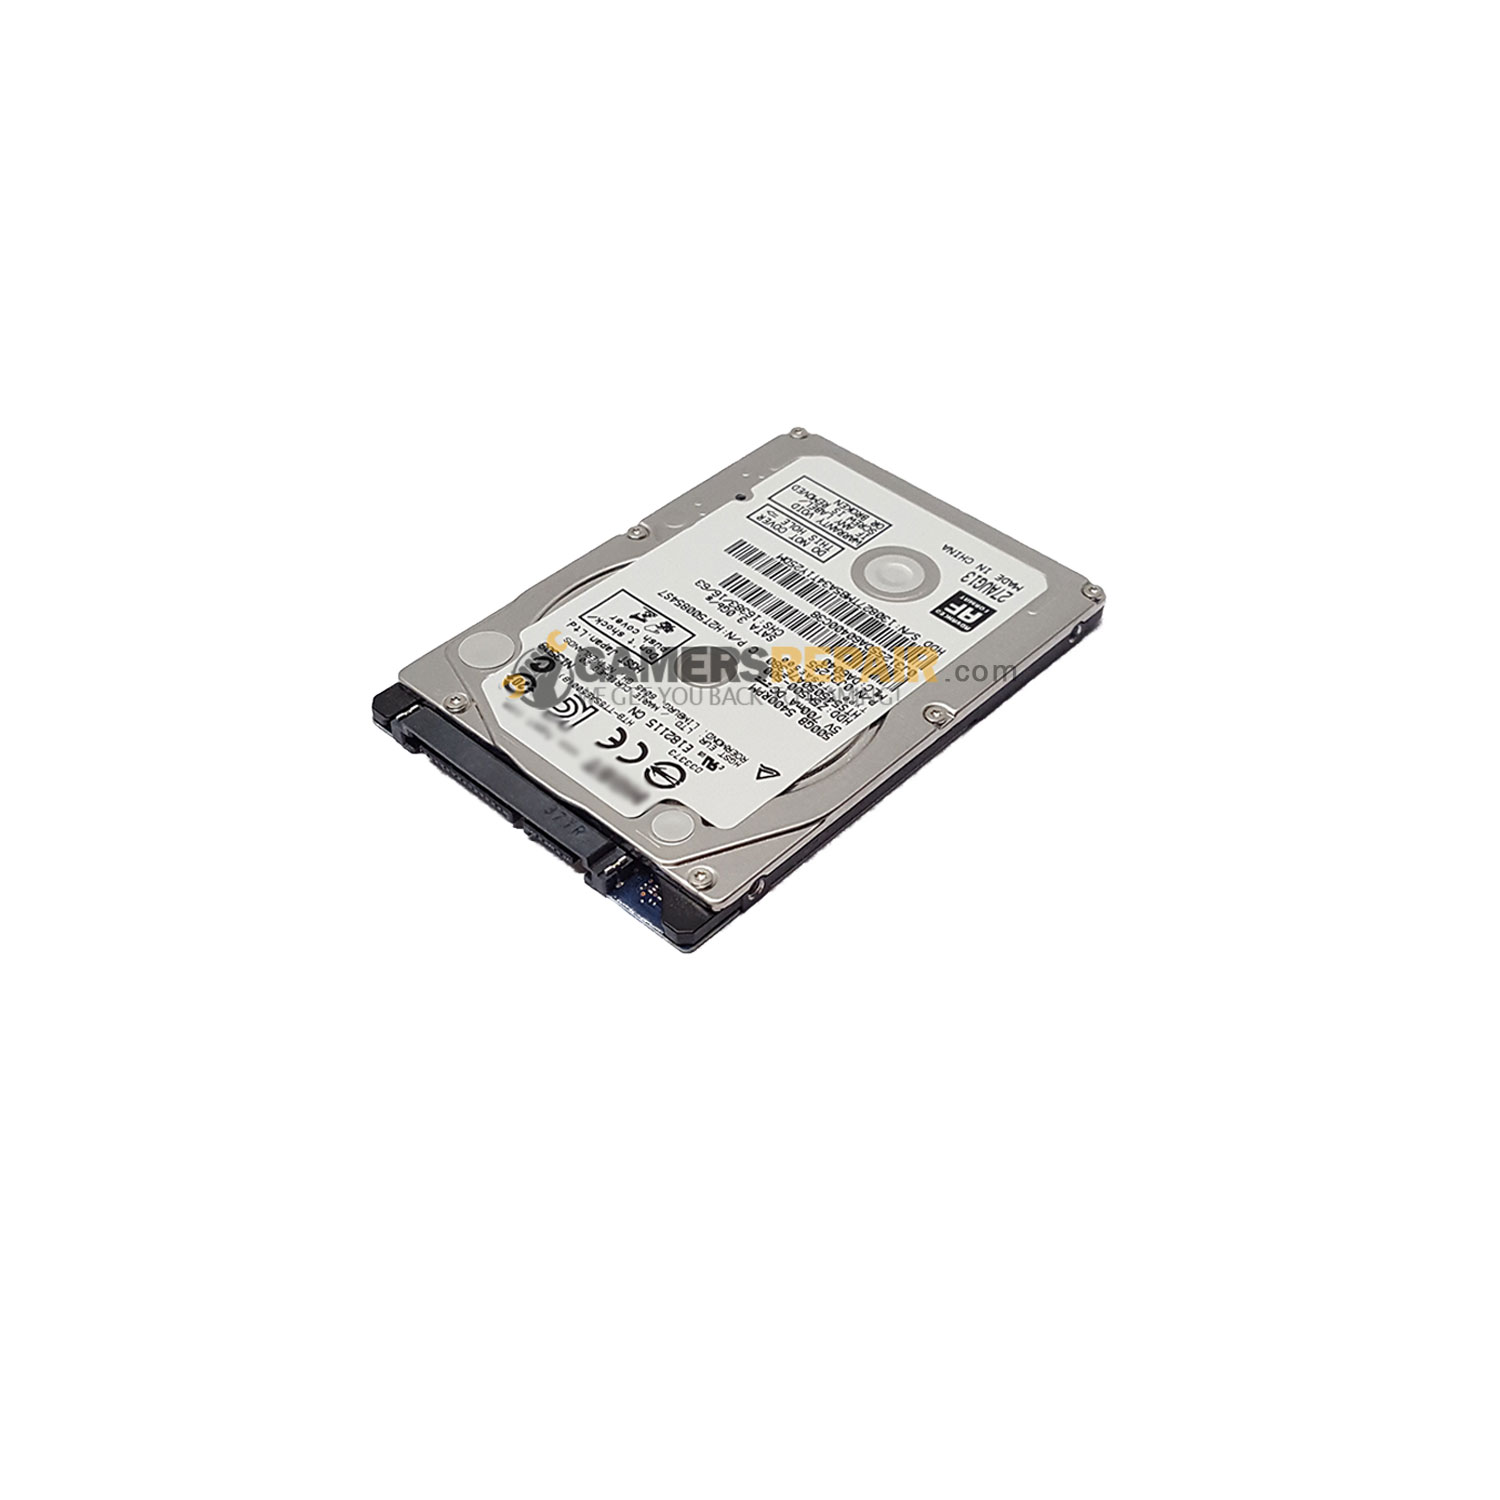 ps4-500gb-hard-drive-1.jpg